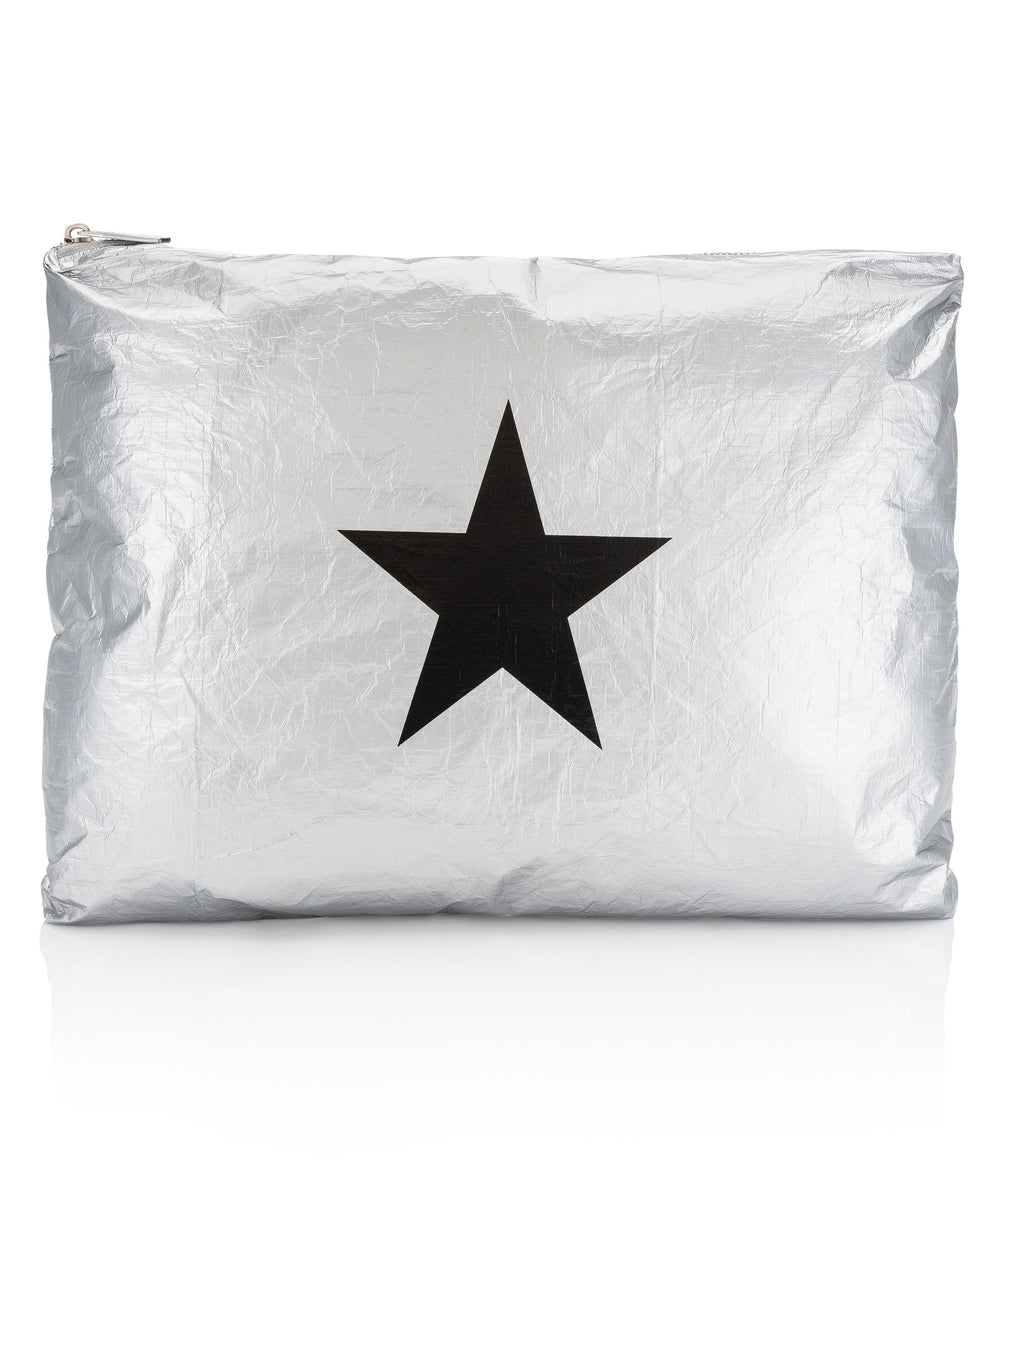 Jumbo Pack Metallic Silver Star Pouch